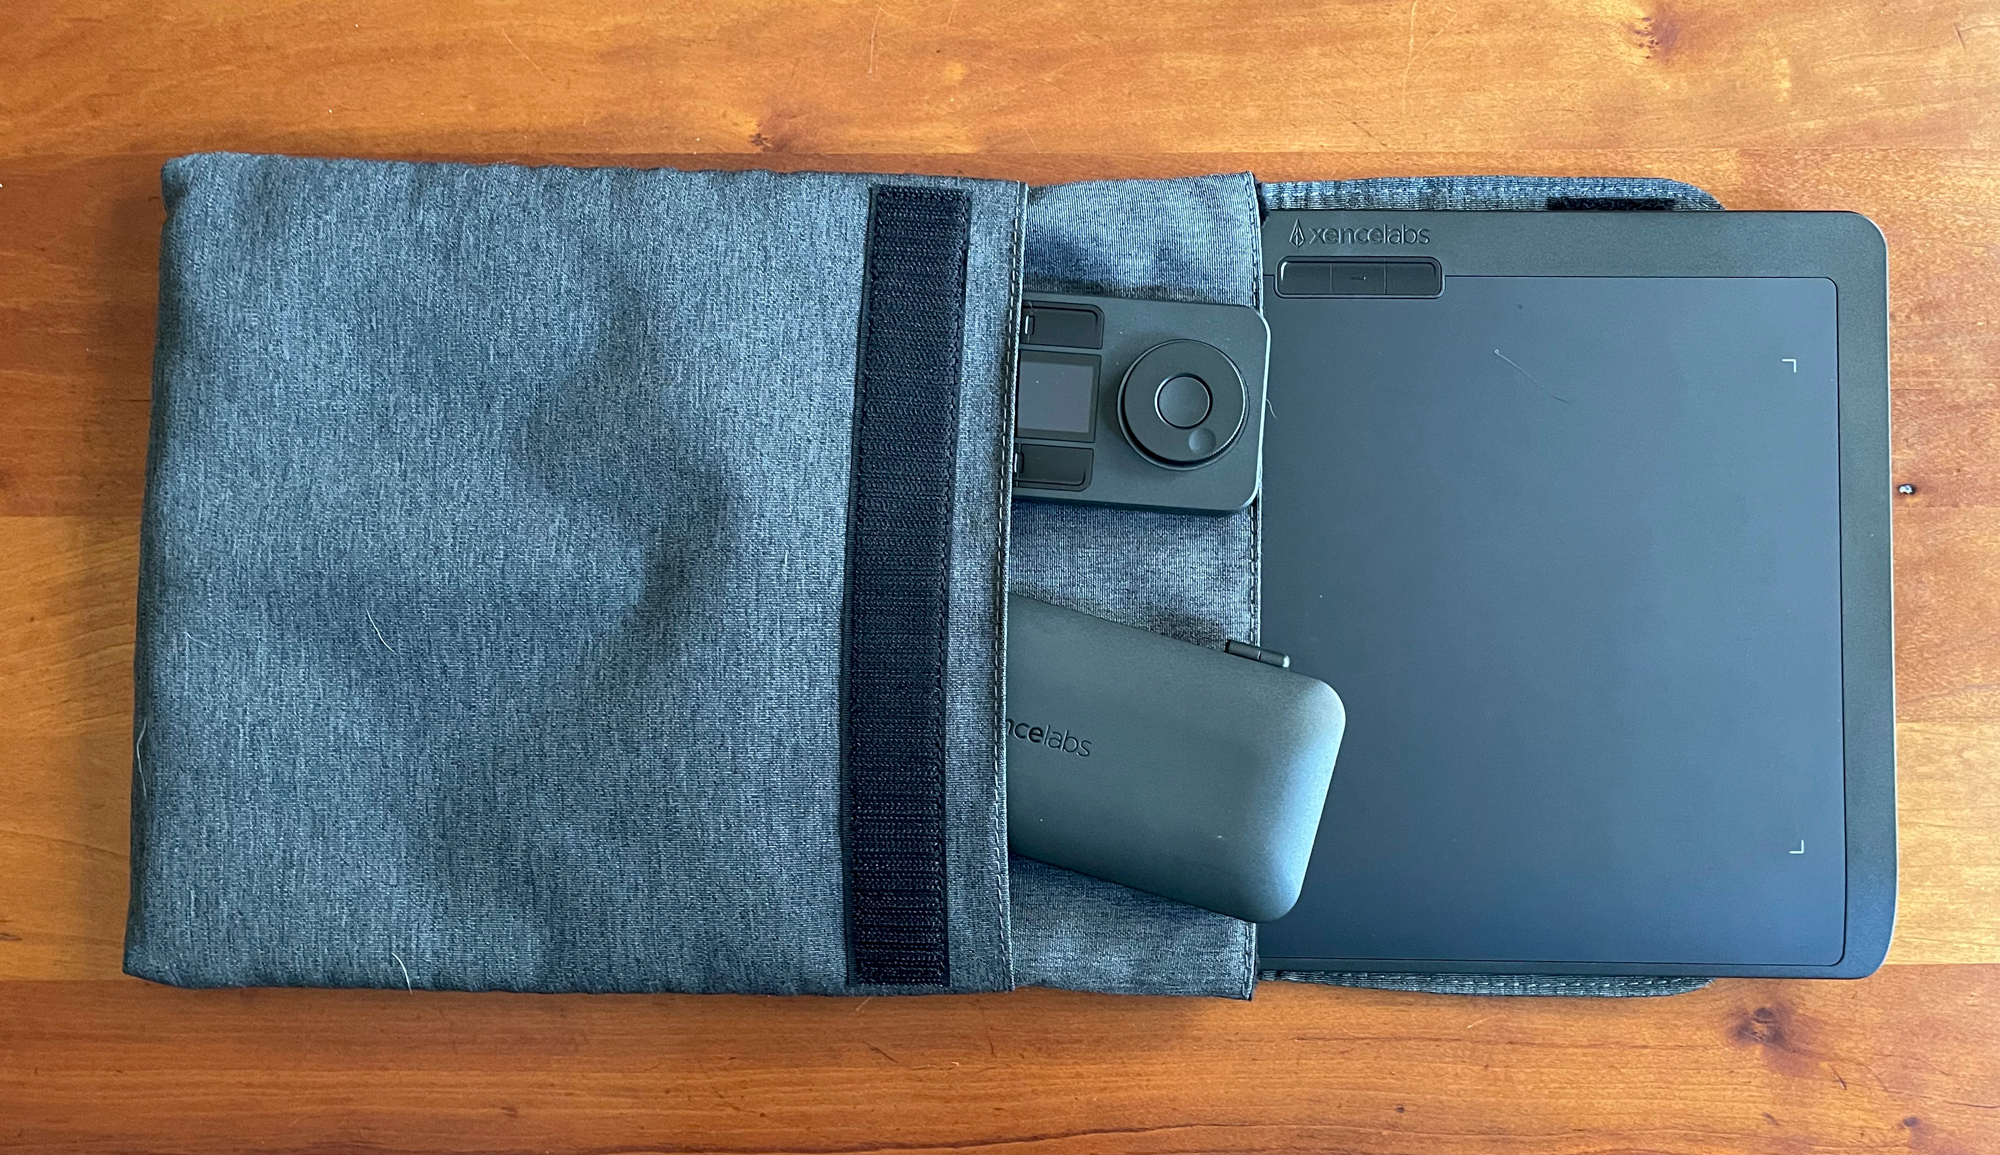 The Xencelabs Tablet Kit